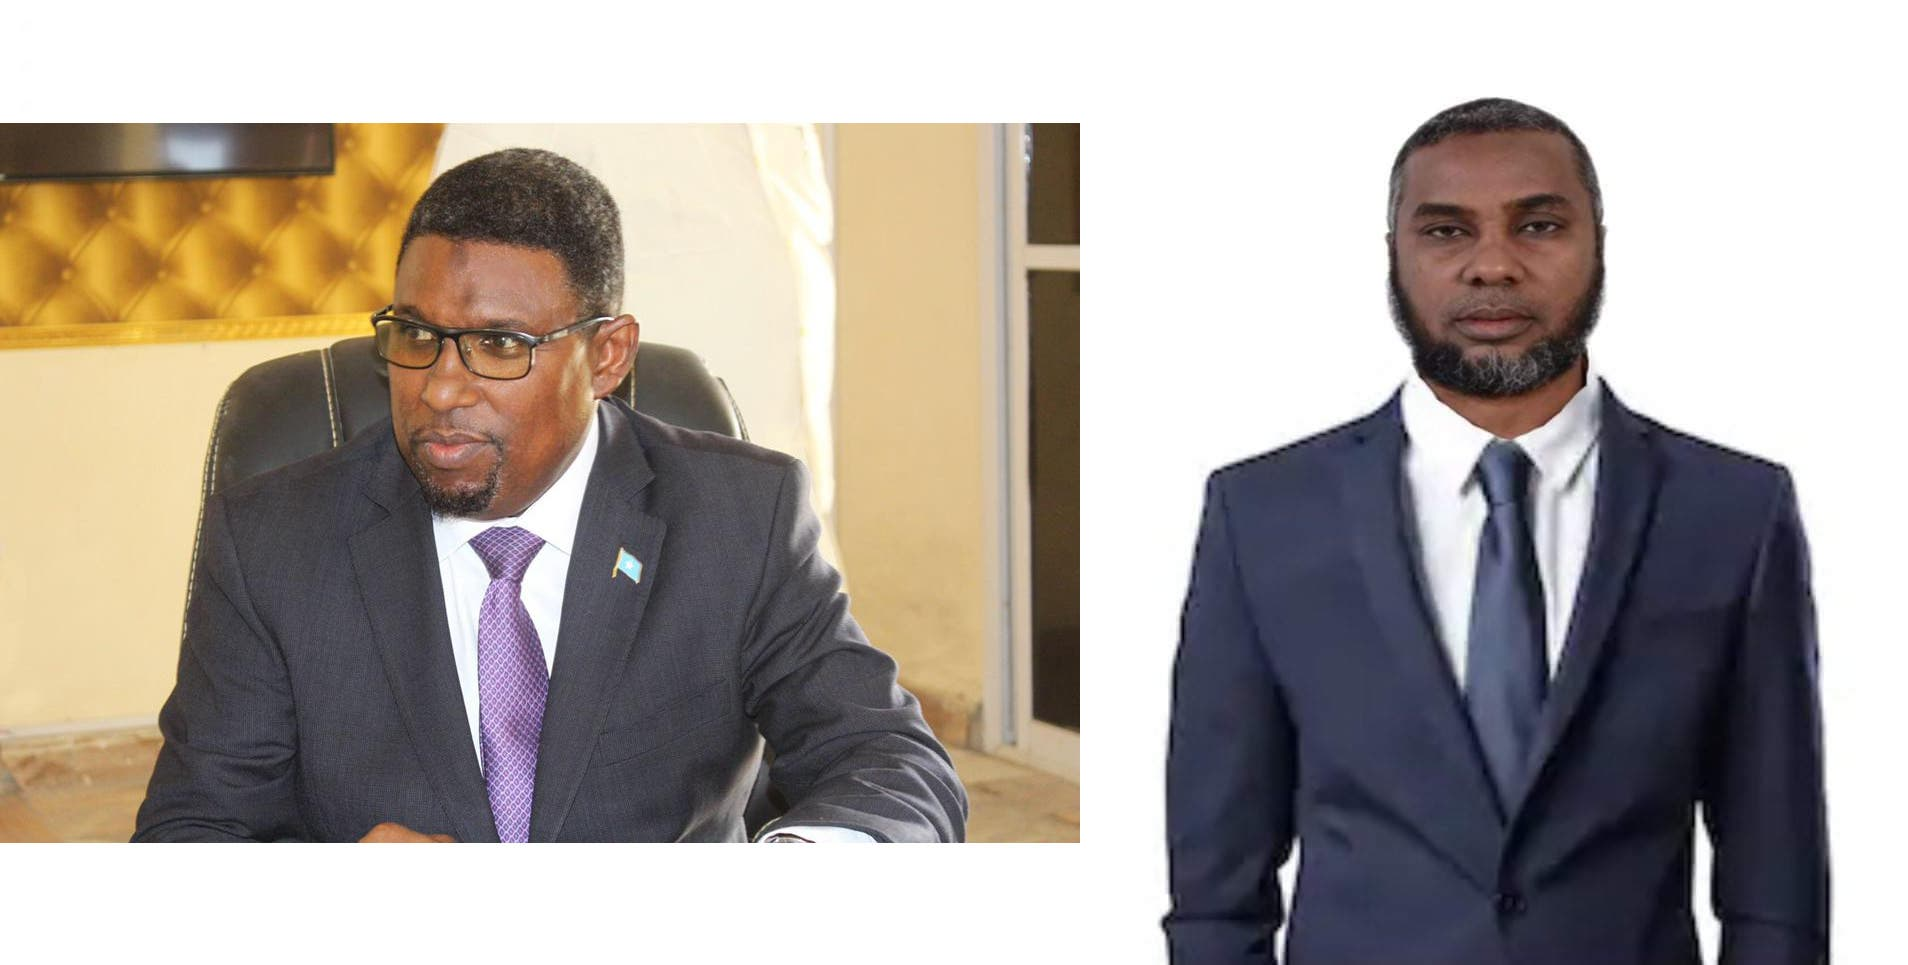 Minister of petroleum and his clan associate accused of grabbing parliamentary seats from minority clans in Somalia